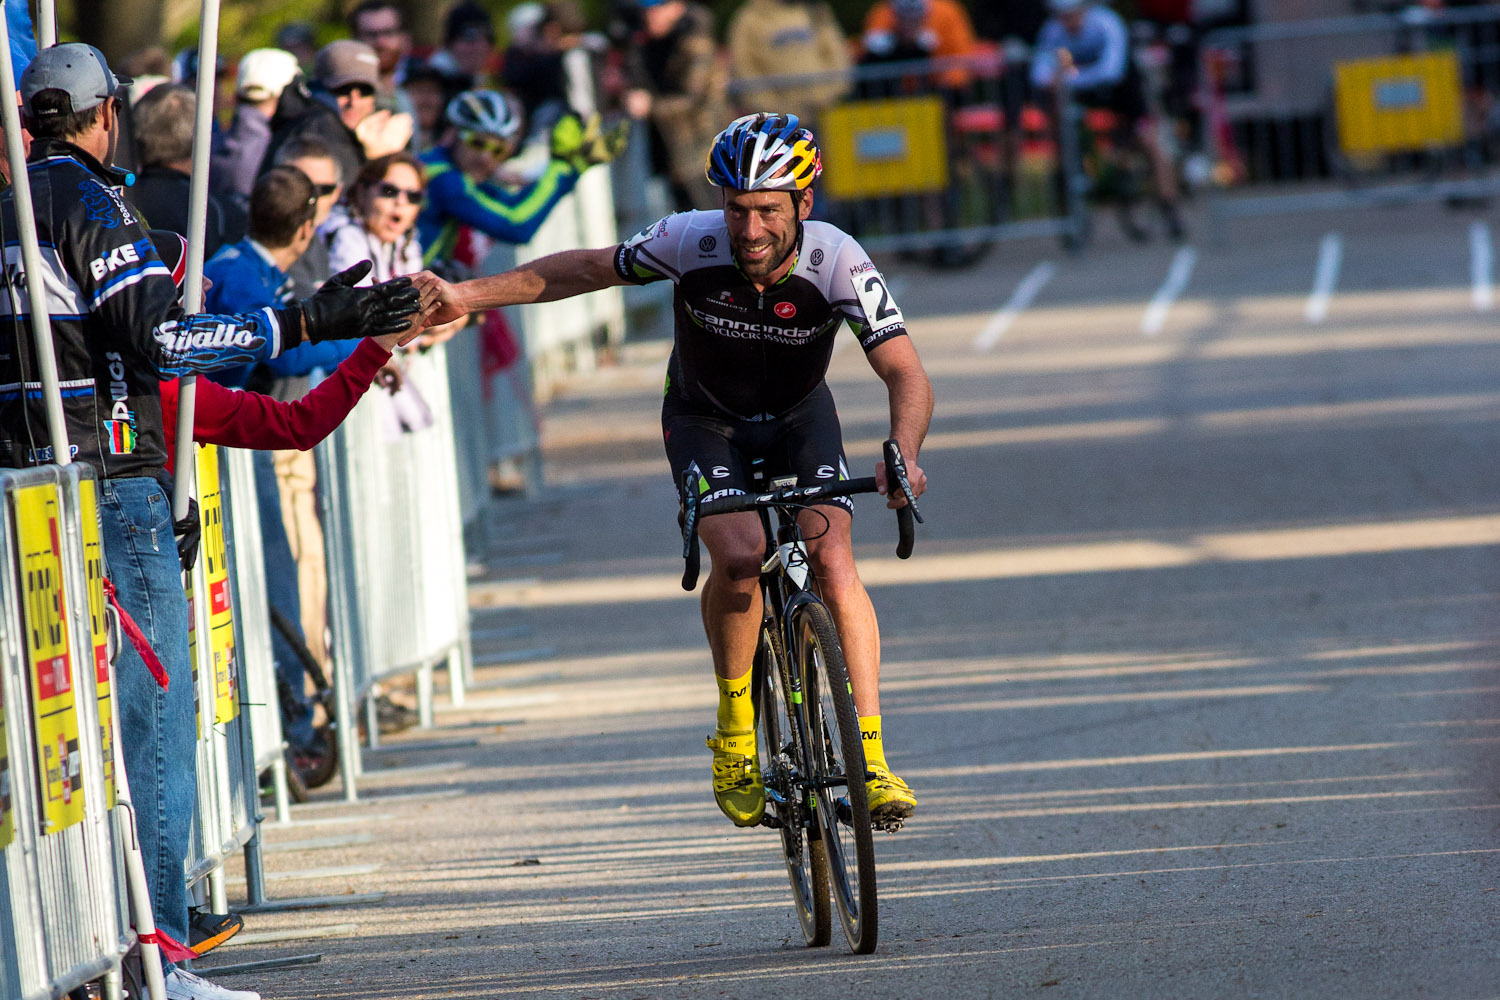 Tim Johnson high-five's fans on the way to the win. © Kent Baumgardt